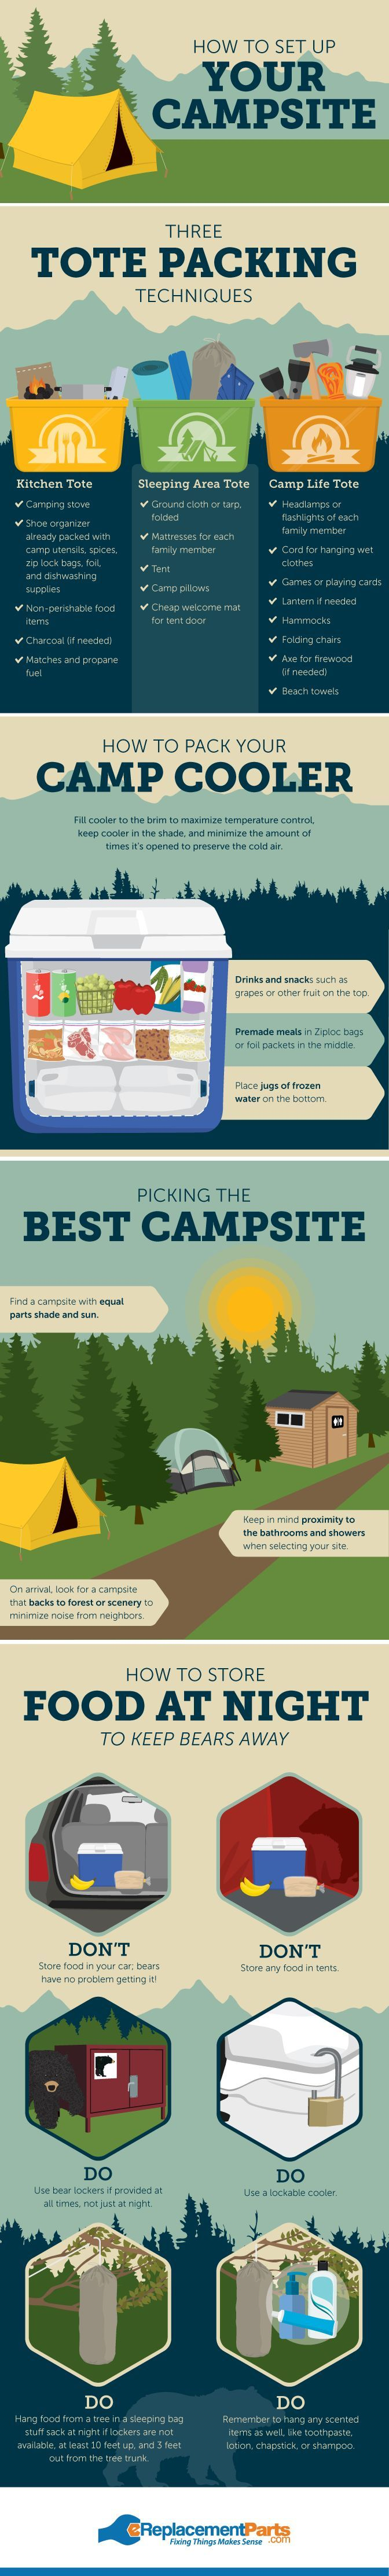 Discussion on this topic: How to Pack for a Camping Trip, how-to-pack-for-a-camping-trip/